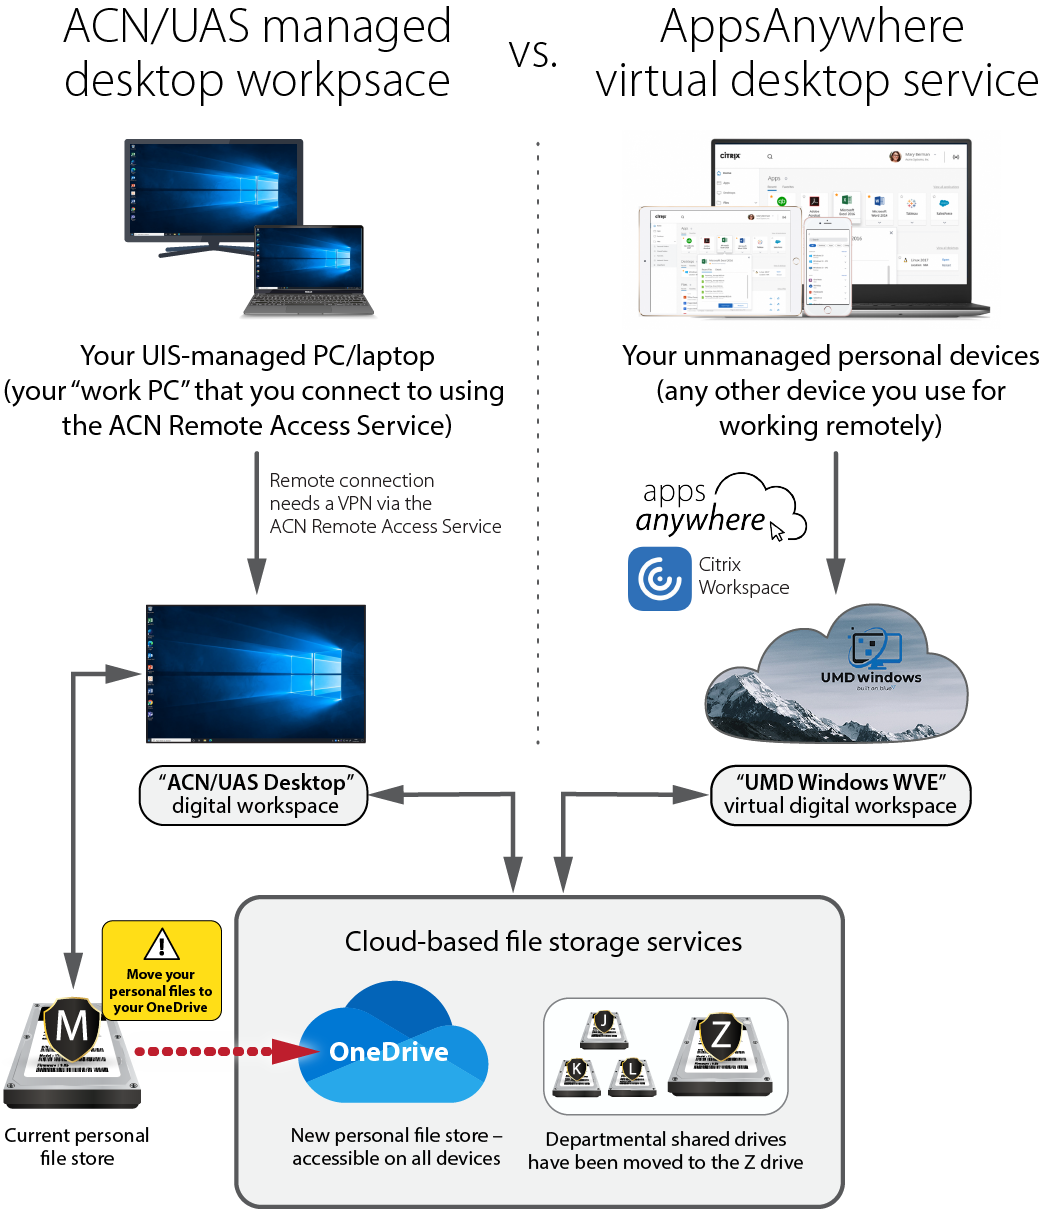 Infographic comparint the UAS Desktop environment to the UMD Windows virtual desktop in AppsAnywhere